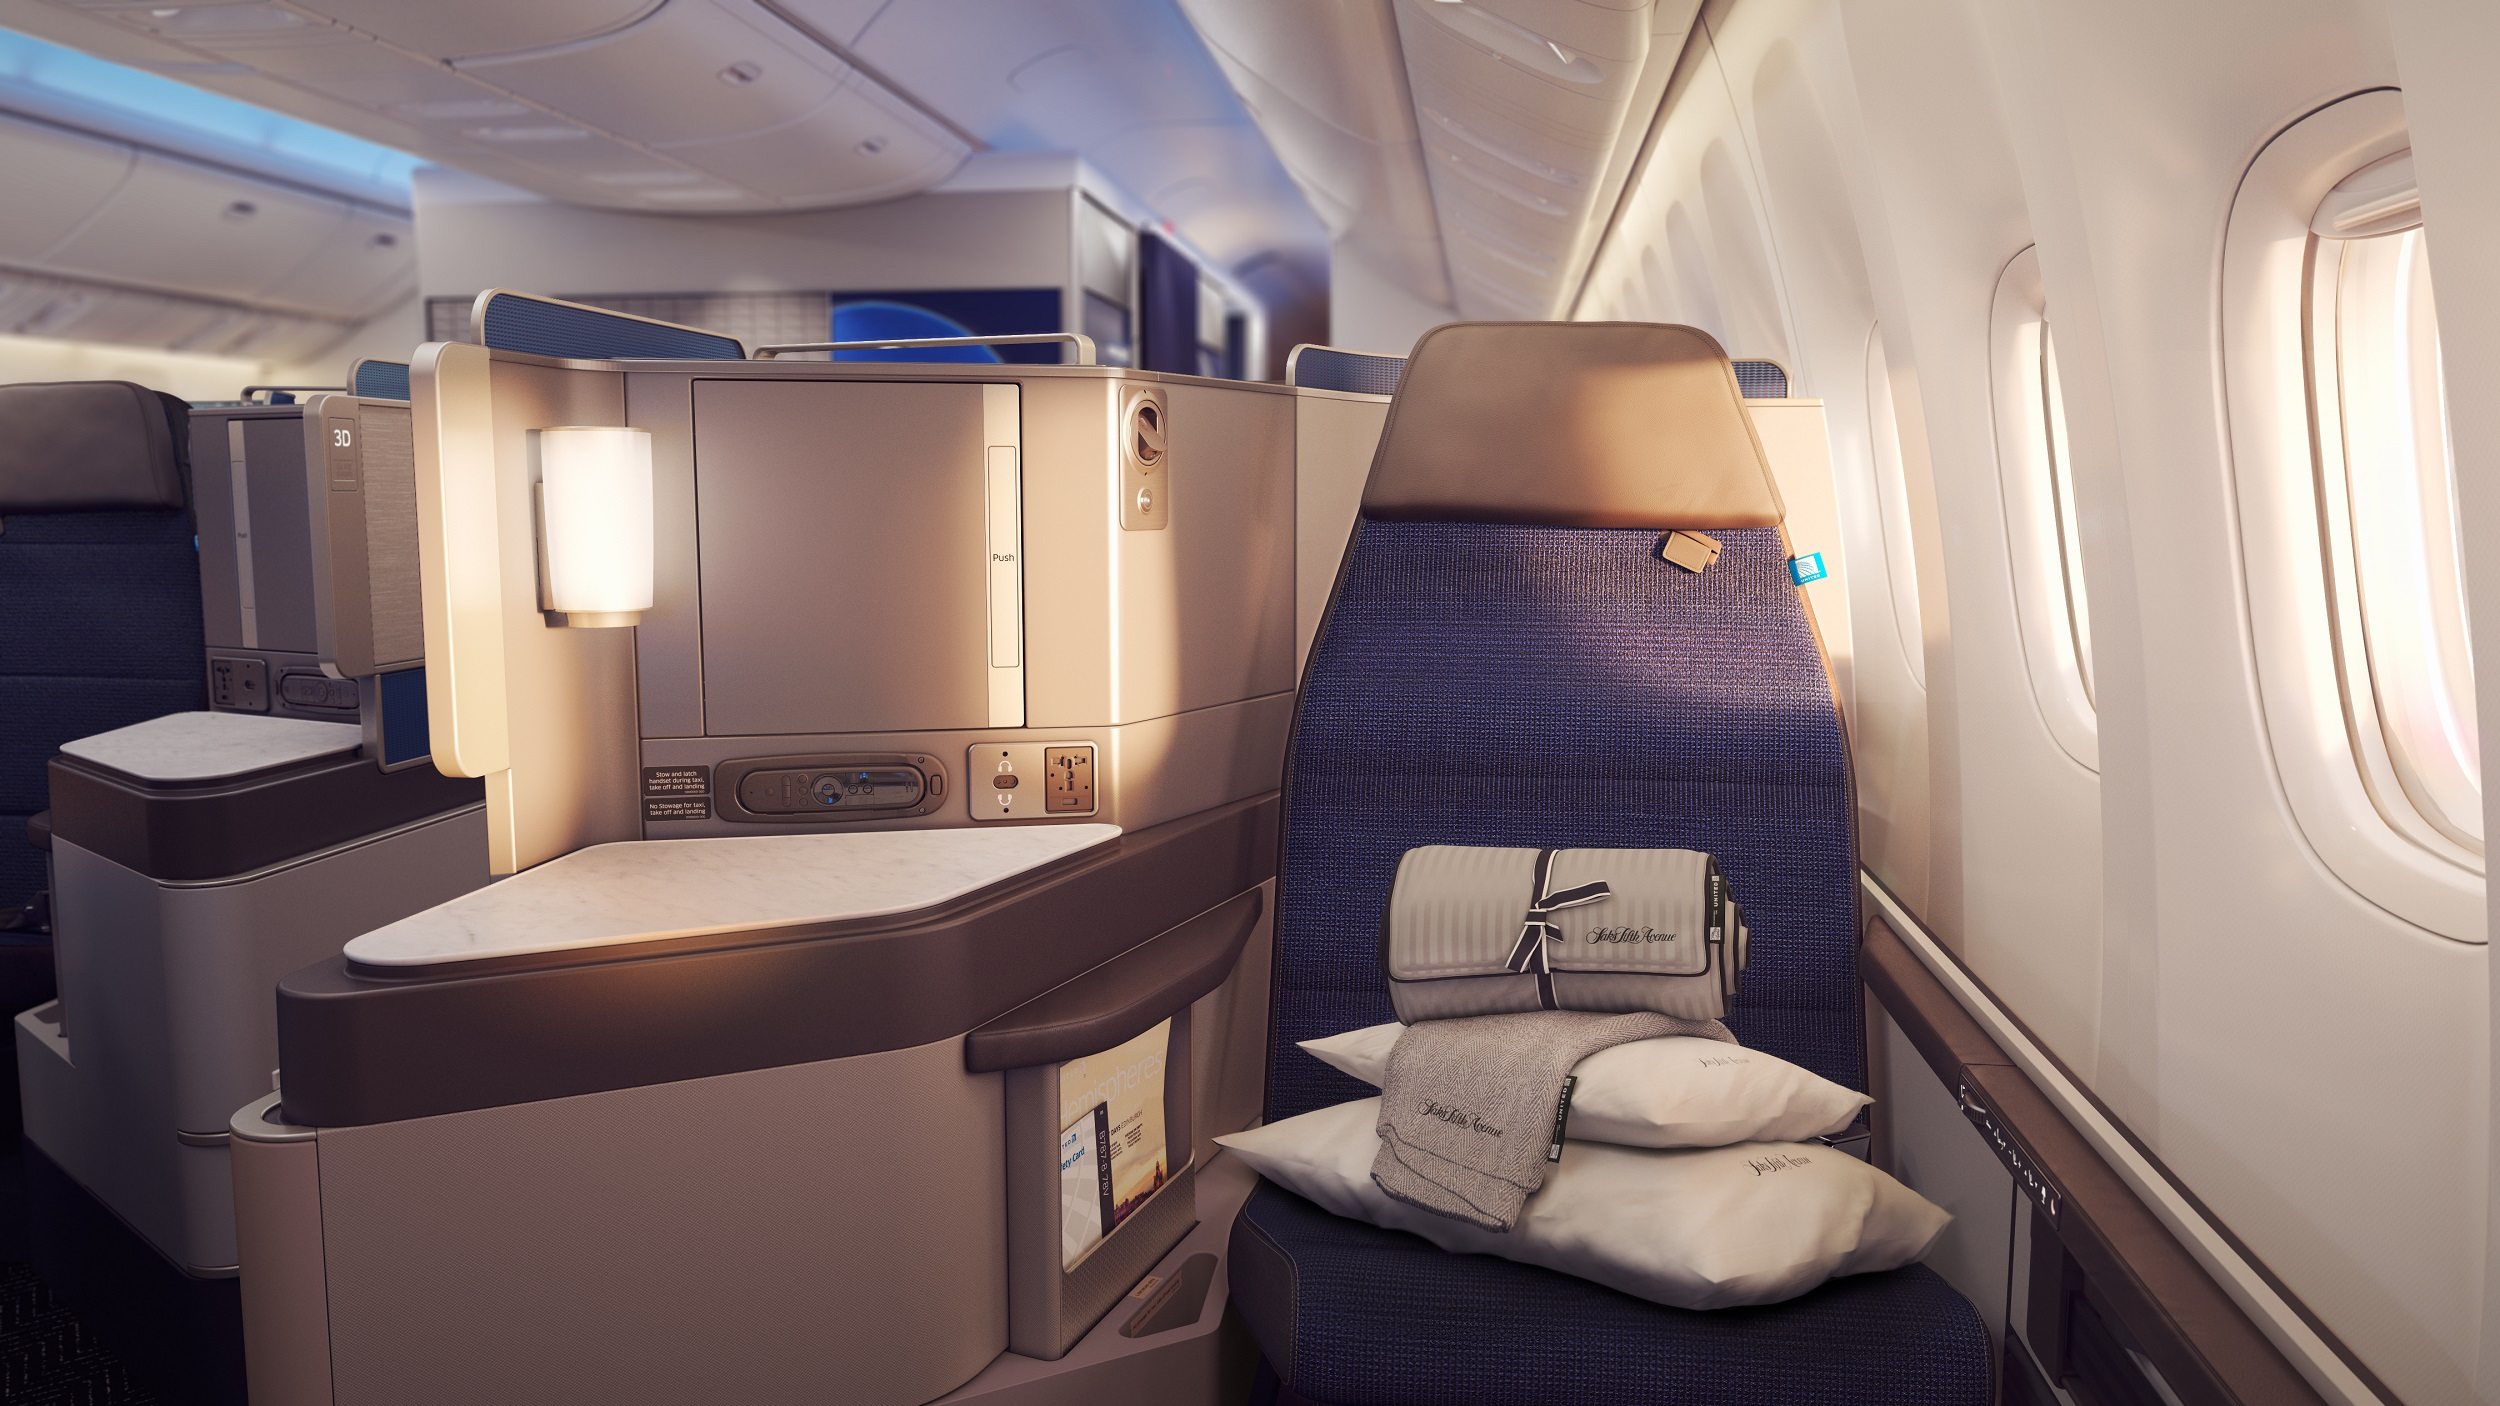 "United ""Polaris"" business class seat. This product won't be available for a while, but the older business class seat is still installed on most international planes. (via United)"